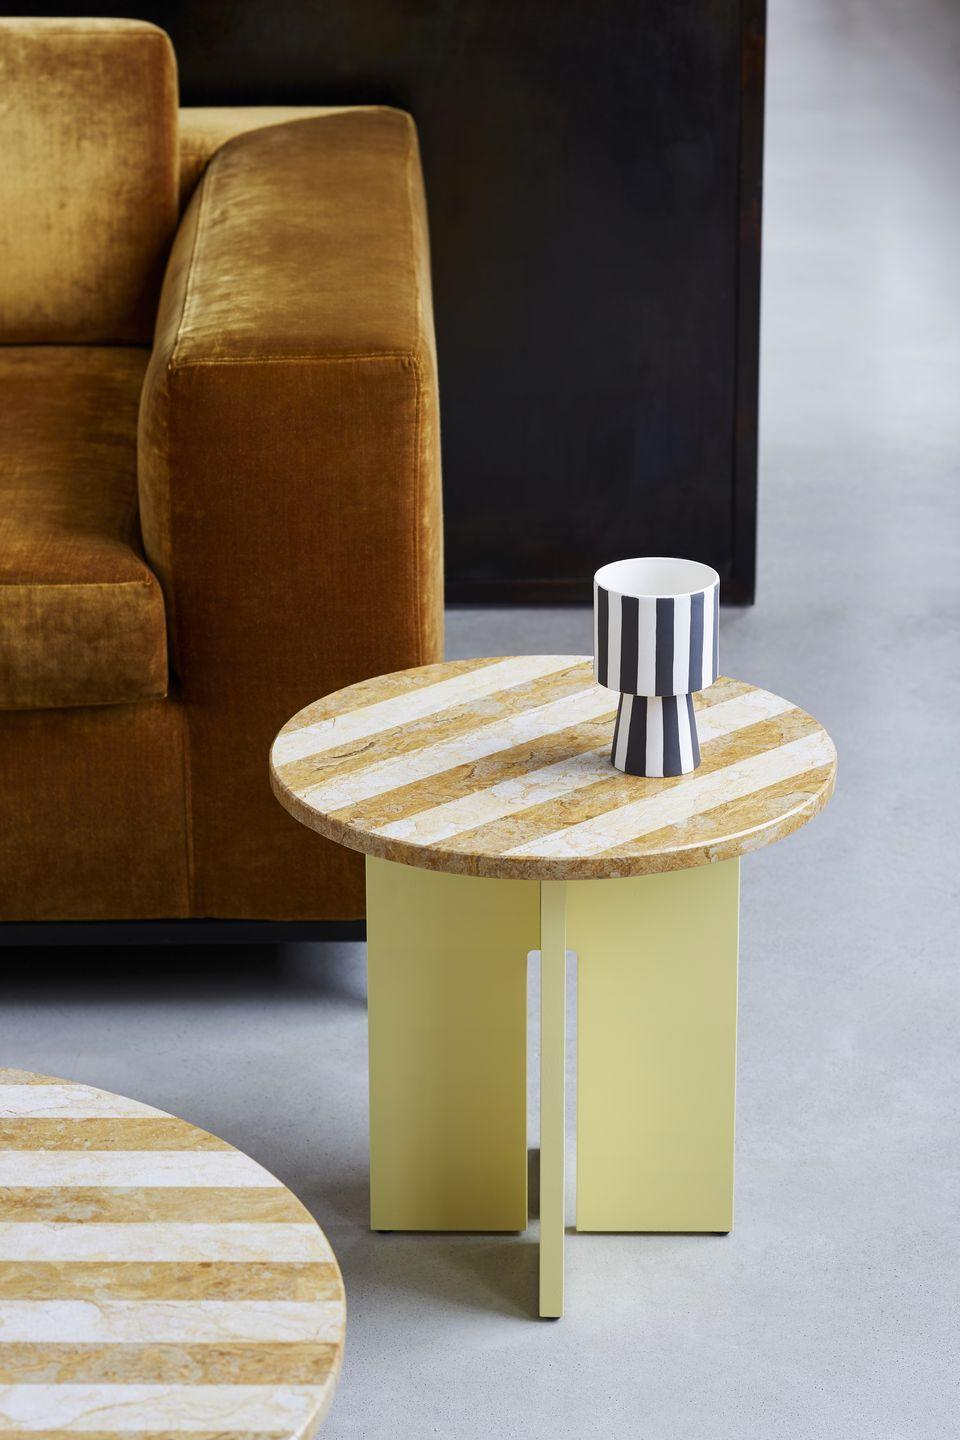 """<p>The 'Sediment' side tables by Hamburg-based design agency Studio Besau-Marguerre appear to be made from two different types of marble. But look closer and you'll see the tops are crafted from single slabs of stone, with the striped pattern created by alternating honed and polished finishes. From £930, <a href=""""https://www.favius.de"""" rel=""""nofollow noopener"""" target=""""_blank"""" data-ylk=""""slk:favius.de"""" class=""""link rapid-noclick-resp"""">favius.de</a></p>"""